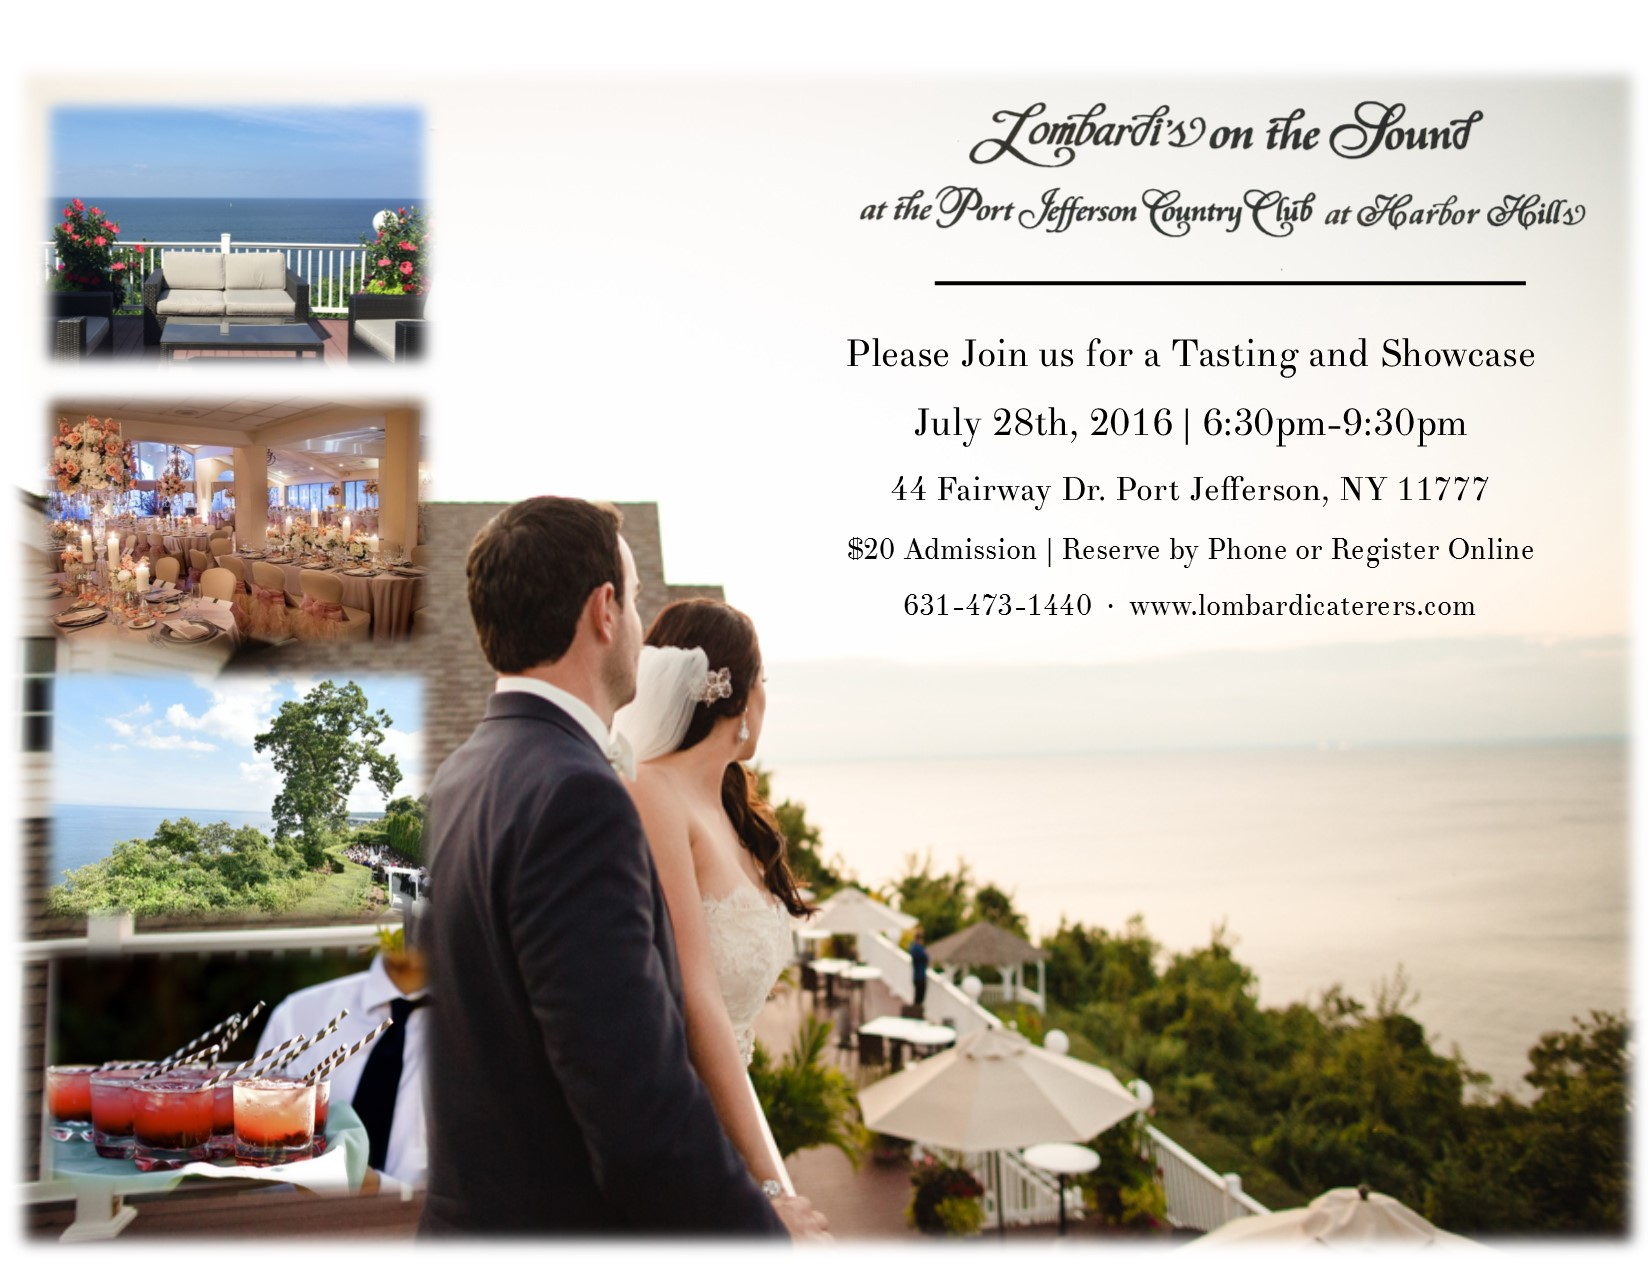 Attend our Summer Bridal Showcase at Lombardi's on the Sound